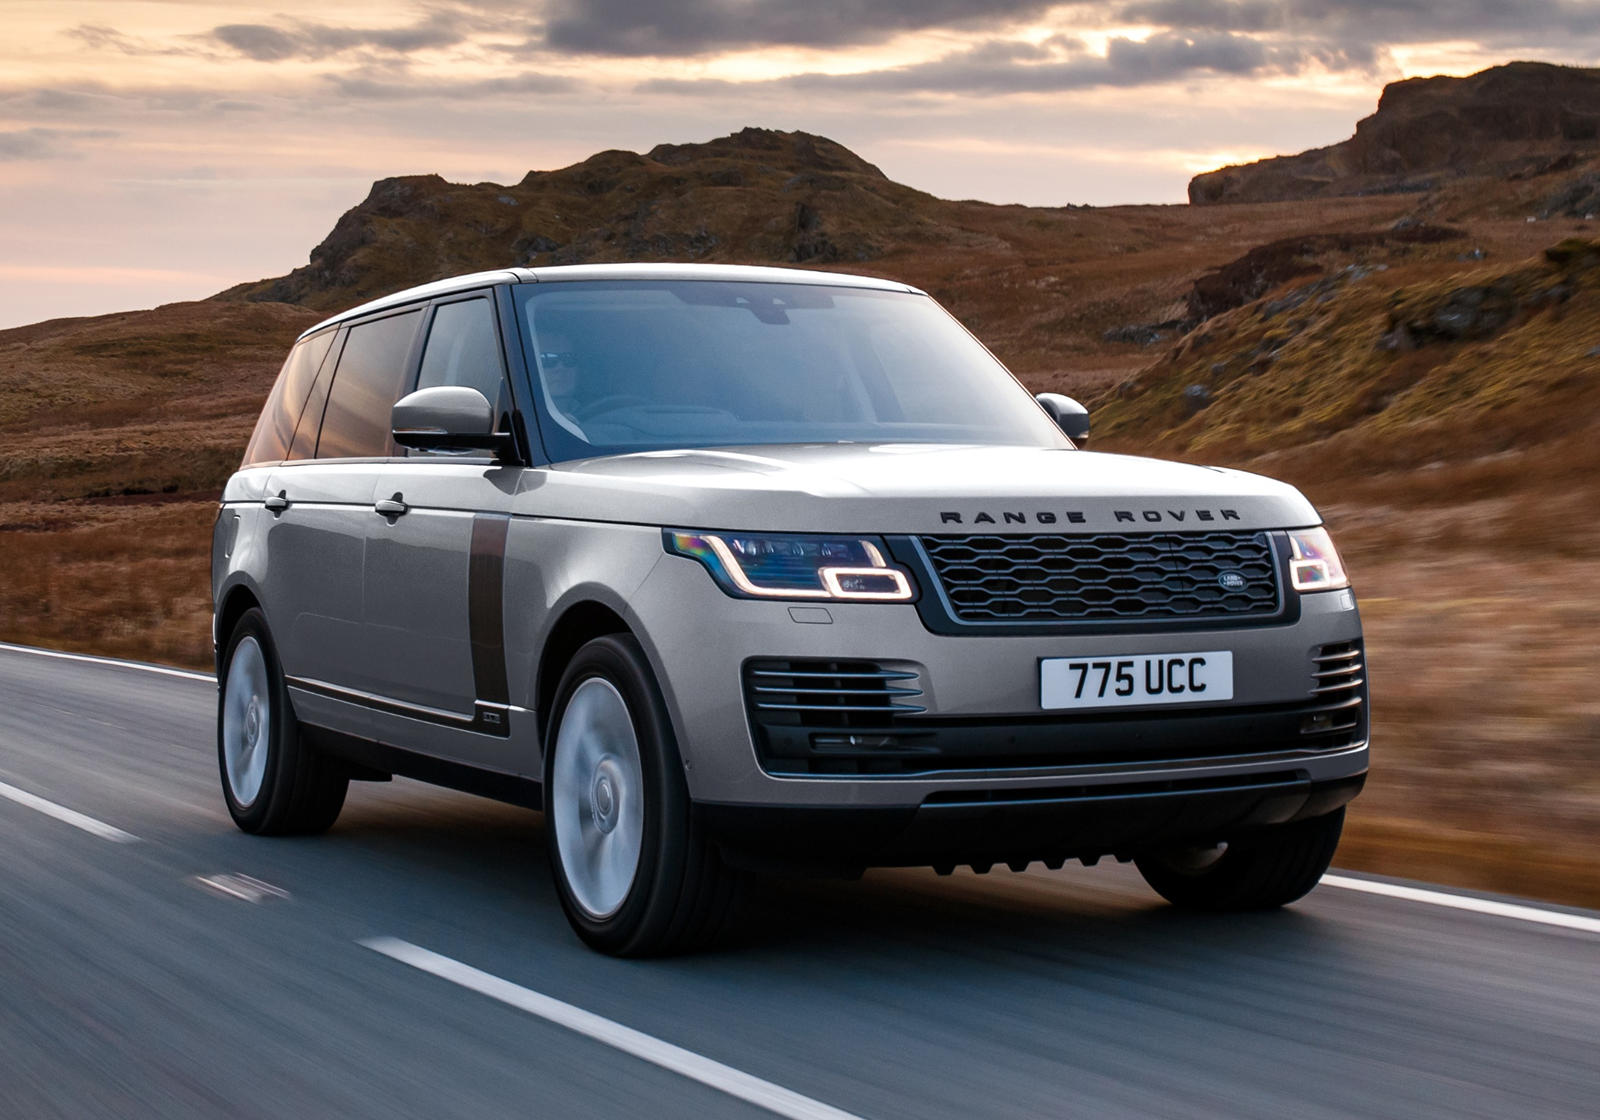 Say goodbye to the Iconic Supercharged V6 on the Range Rover